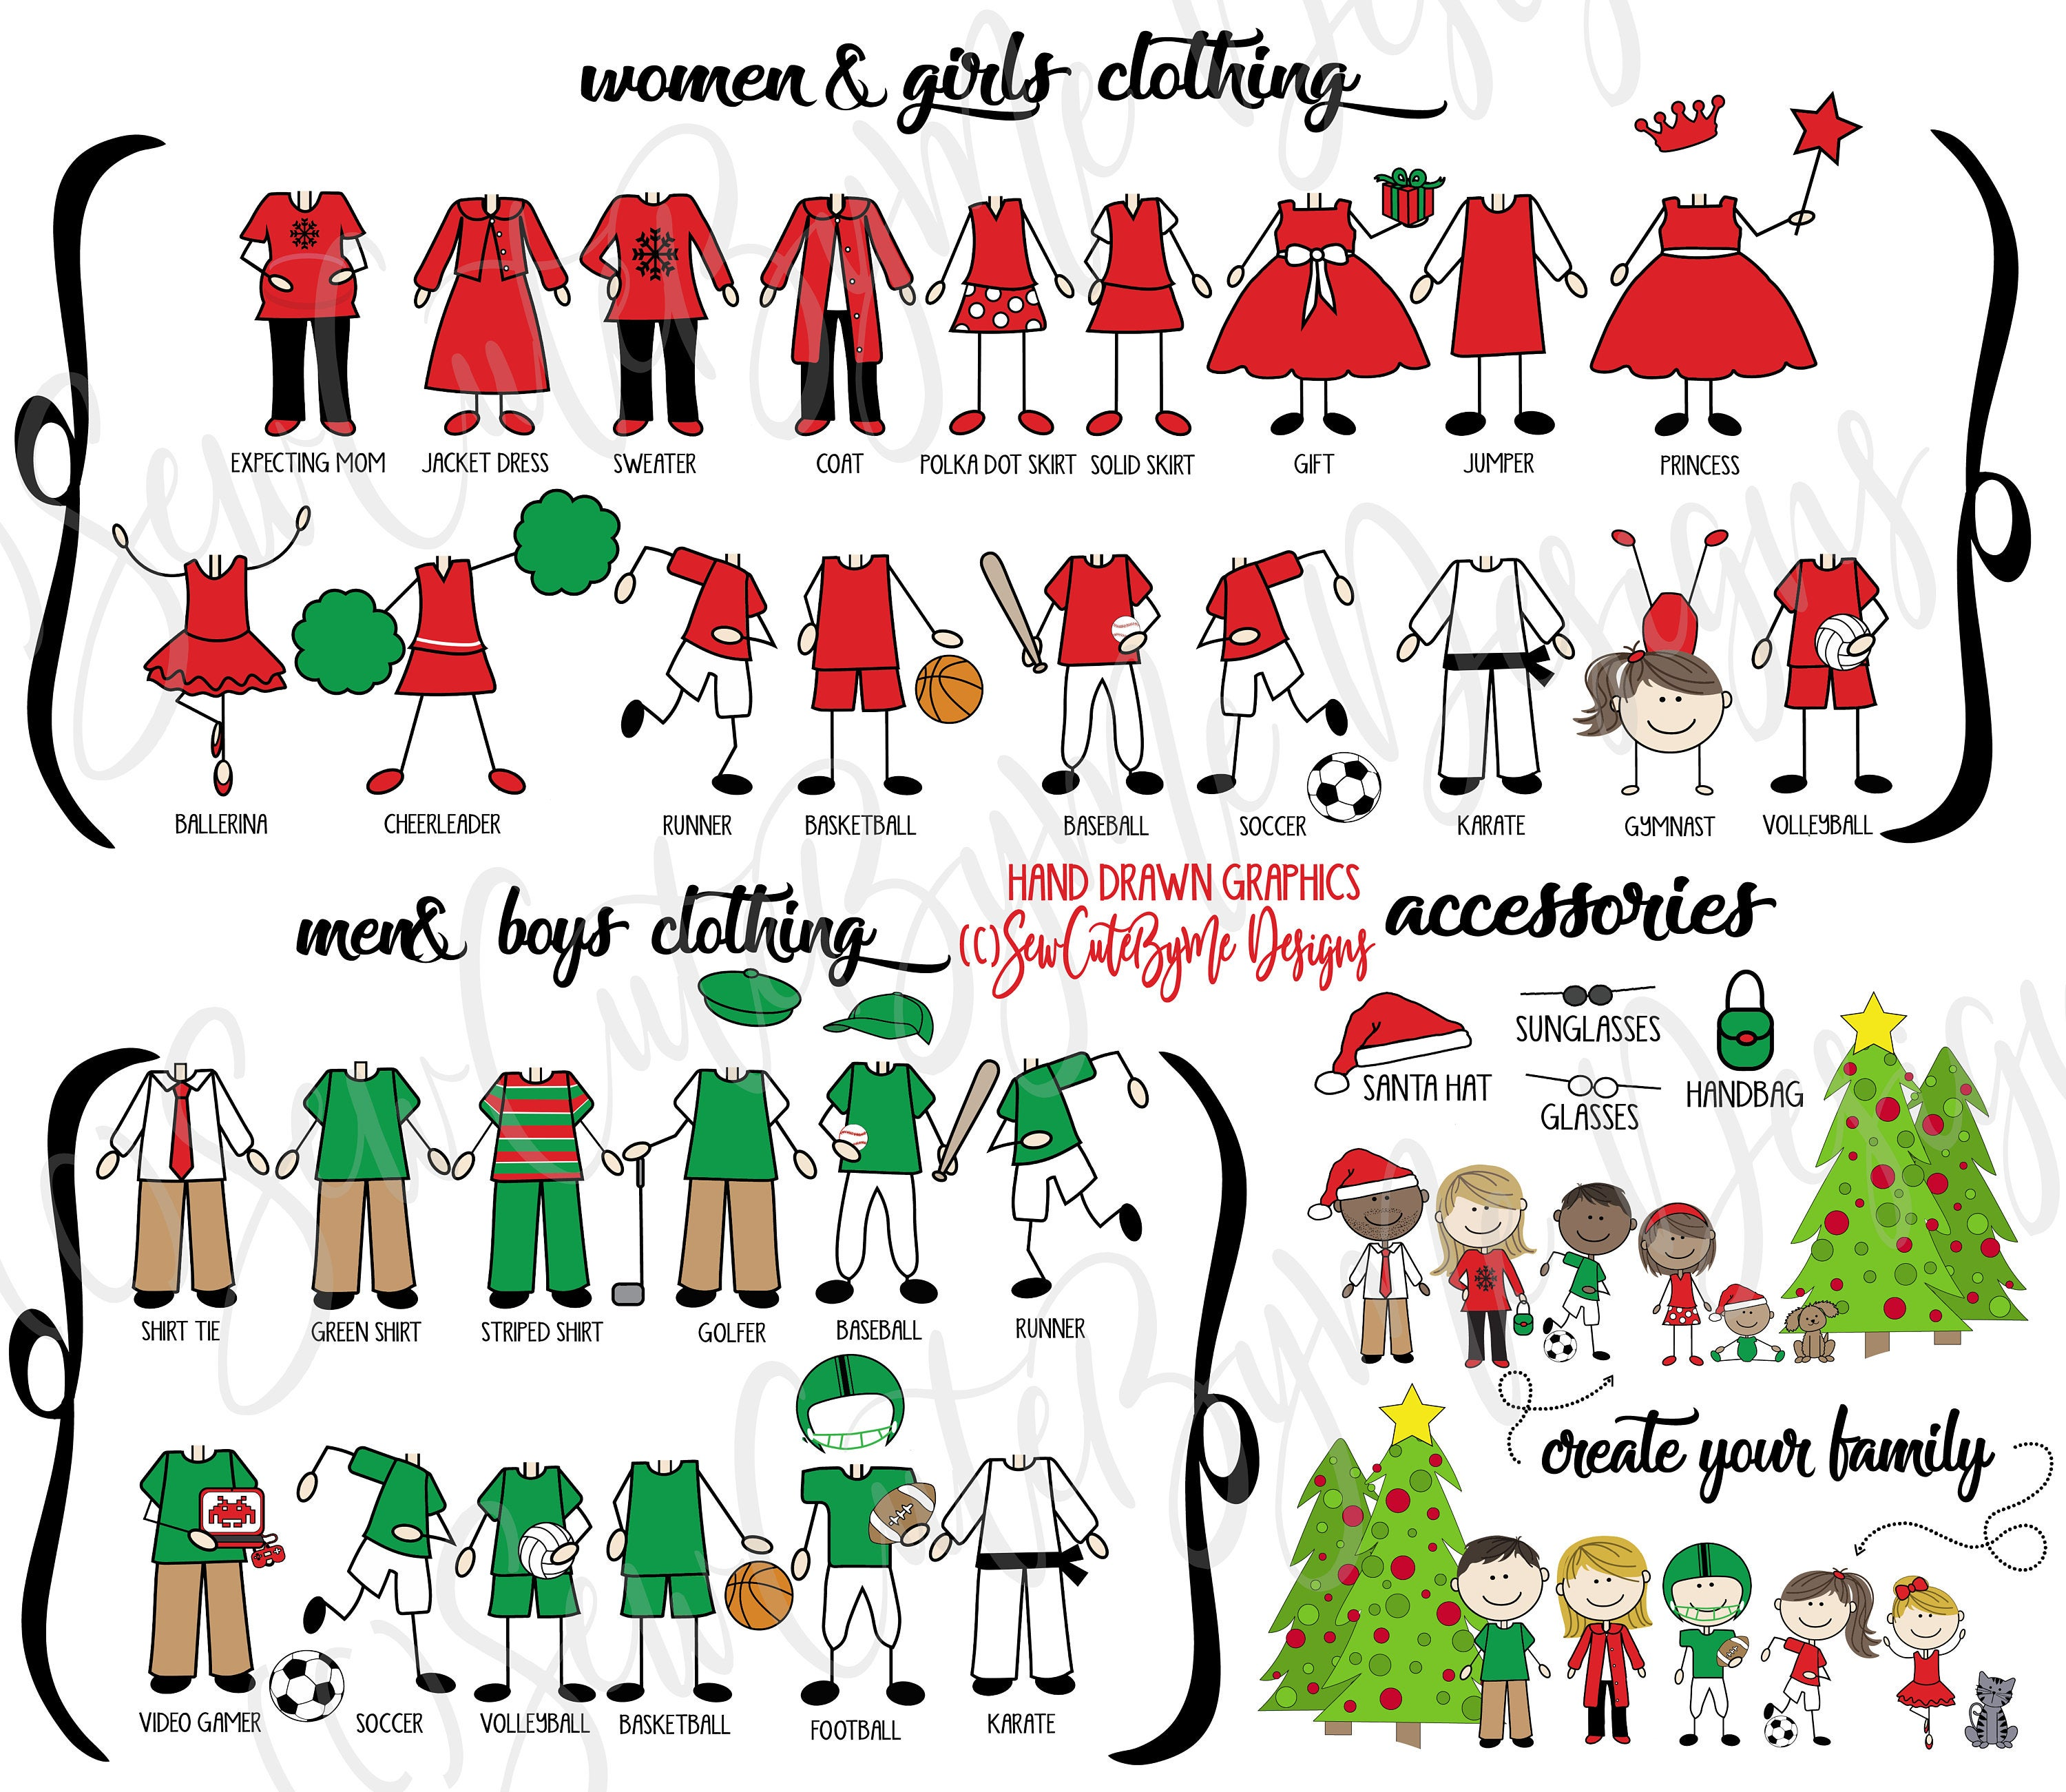 family portrait Christmas ornament choices - clothing and accessories